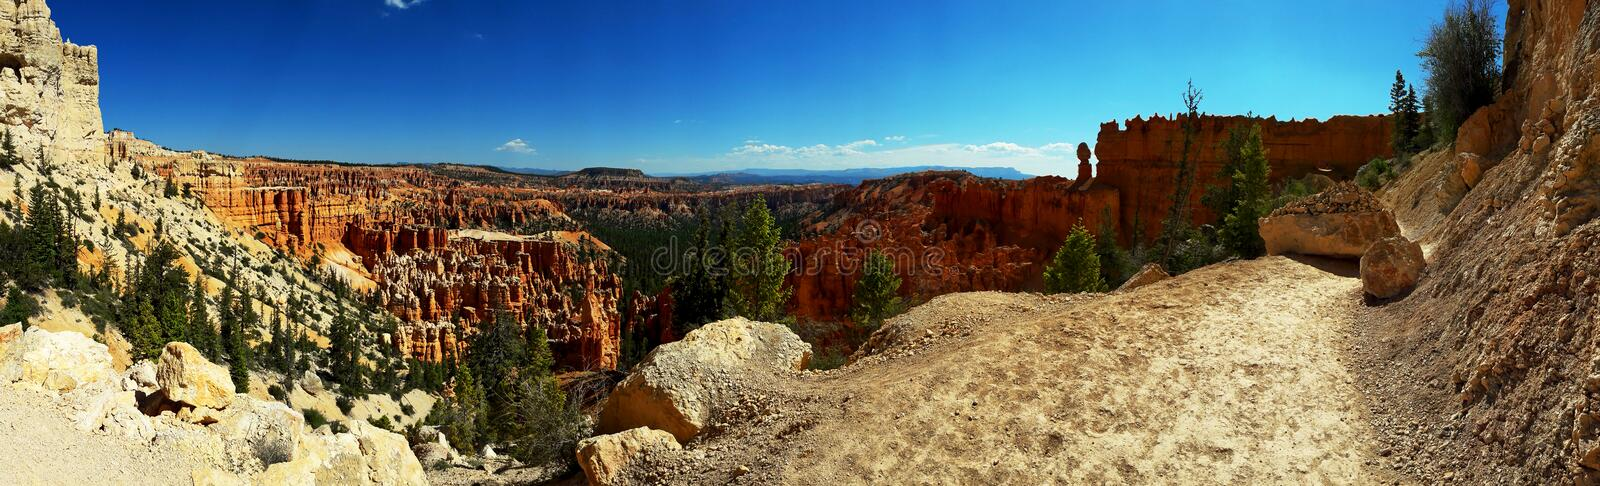 Bryce Canyon National Park, Utah, Etats-Unis image stock